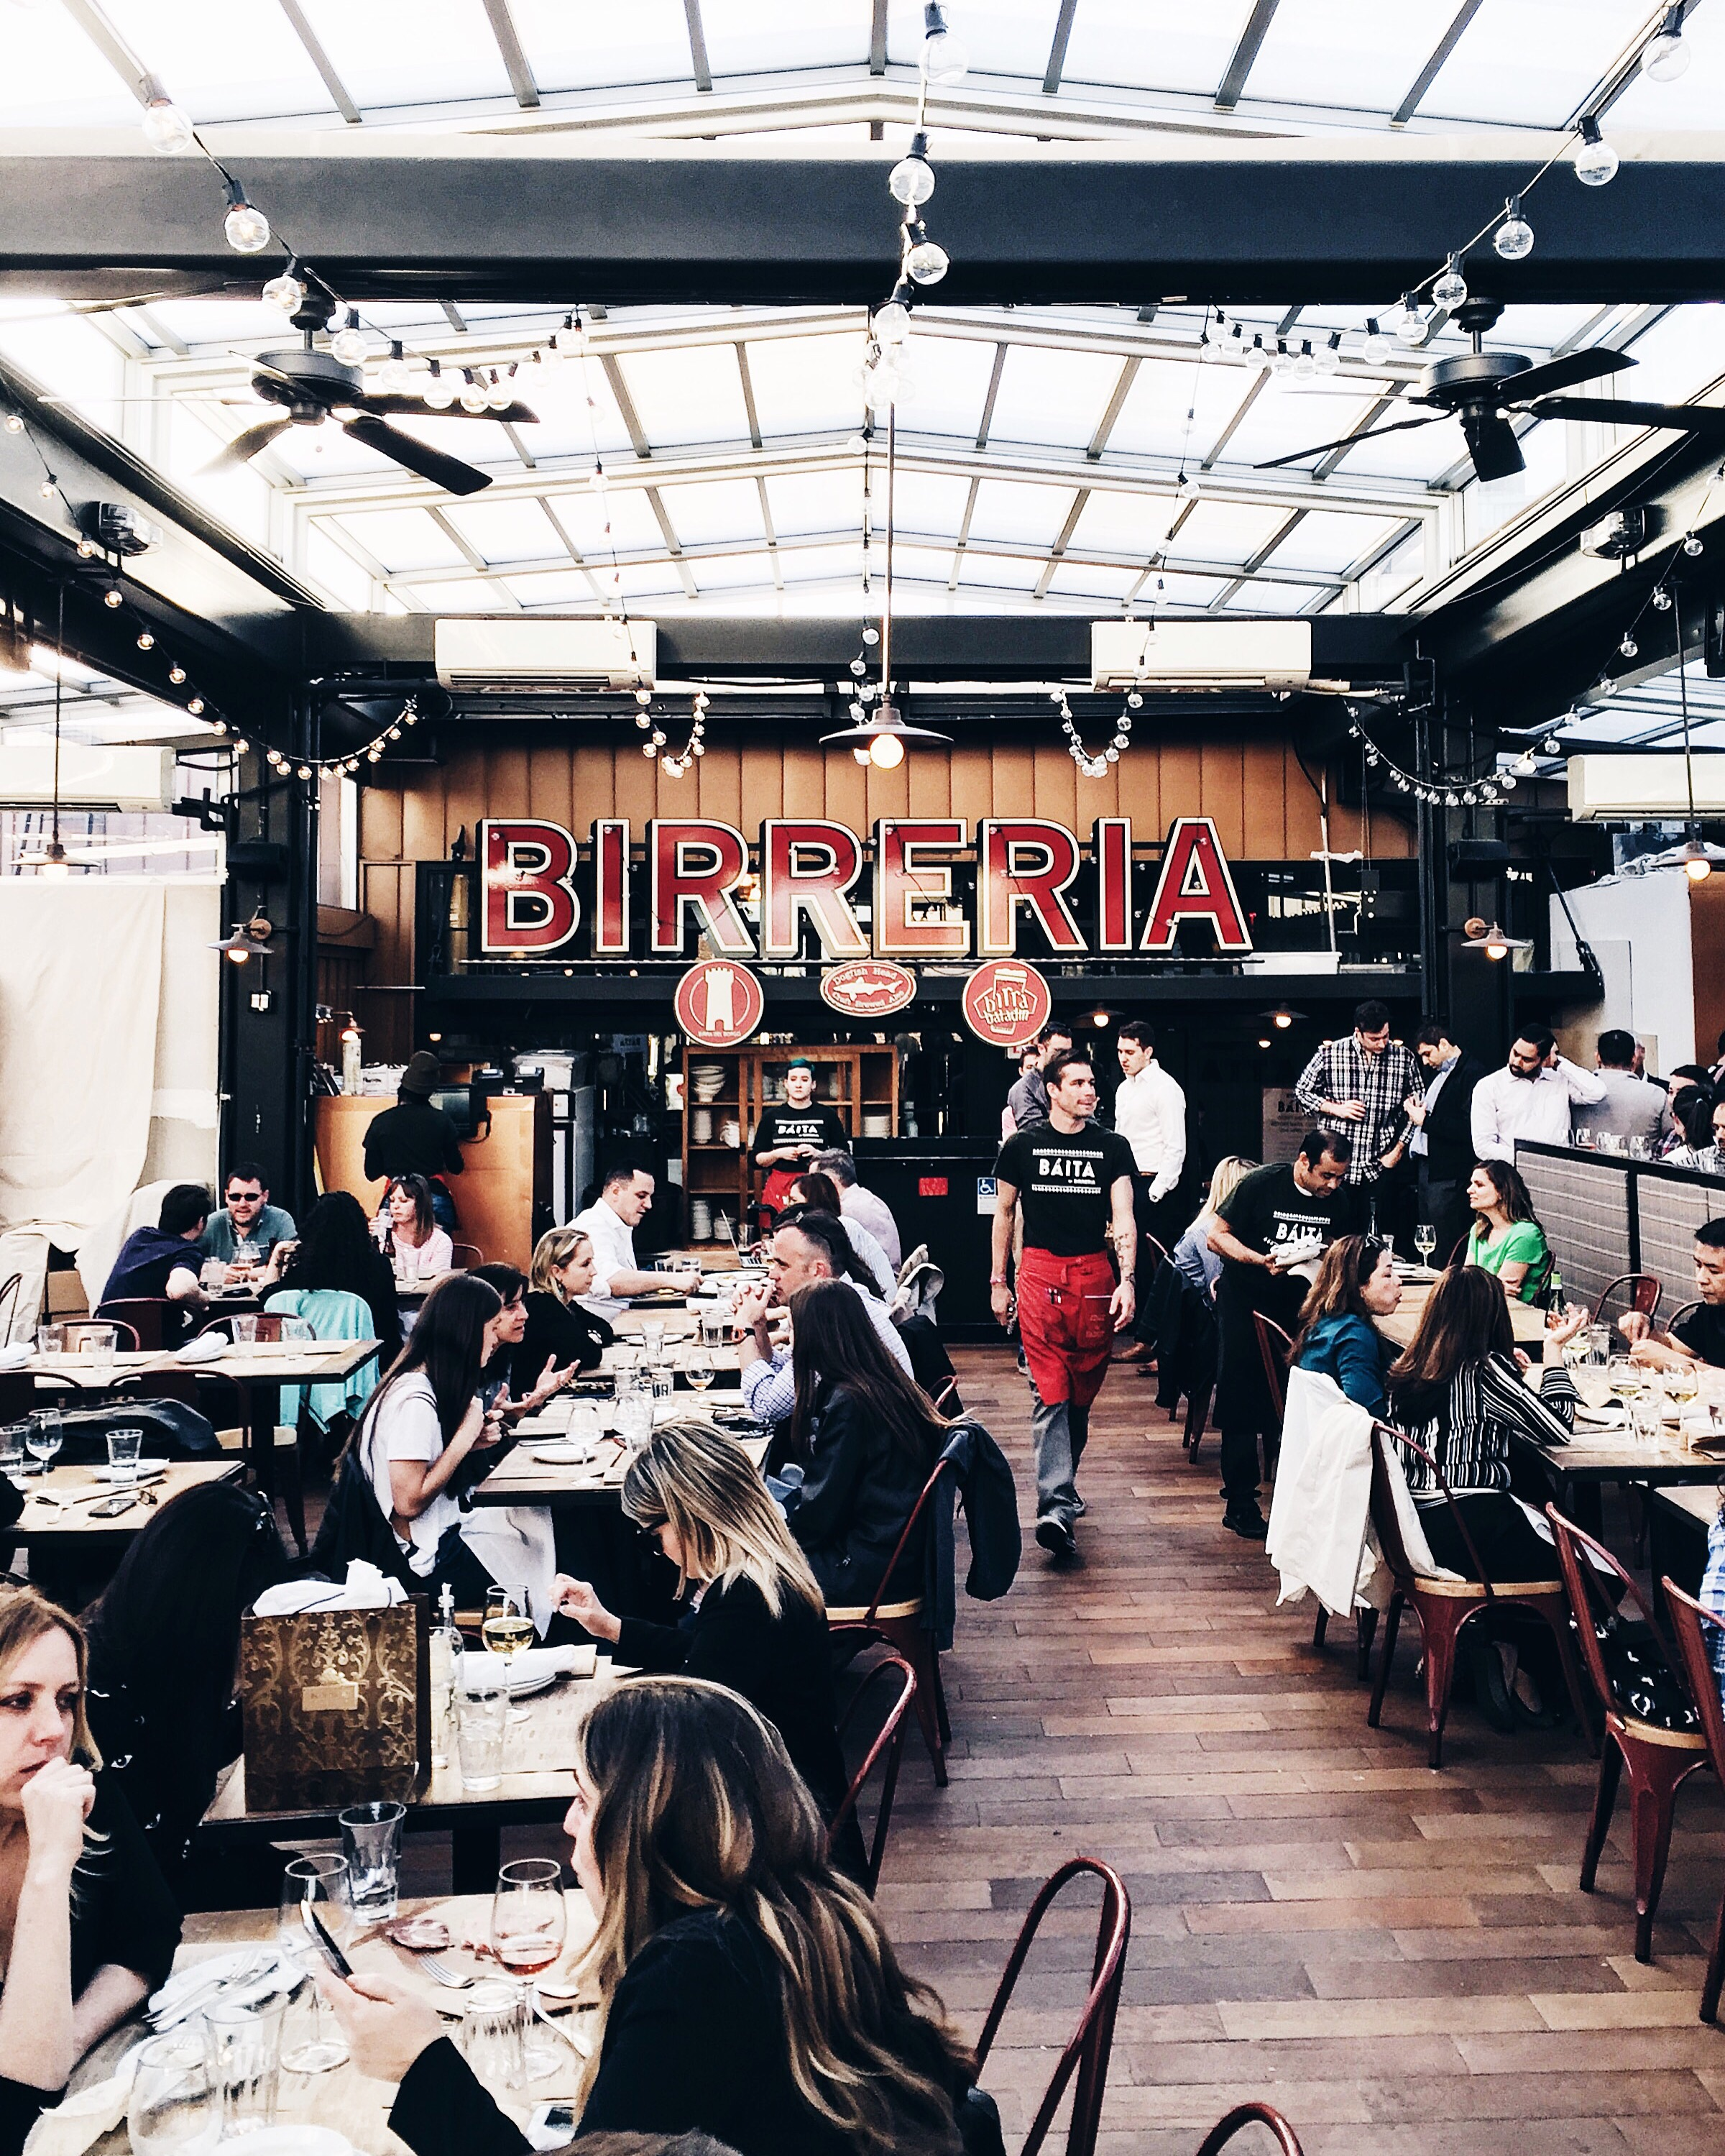 La Birreria is home to a varied selection of house brewed ales and fine imported beers.